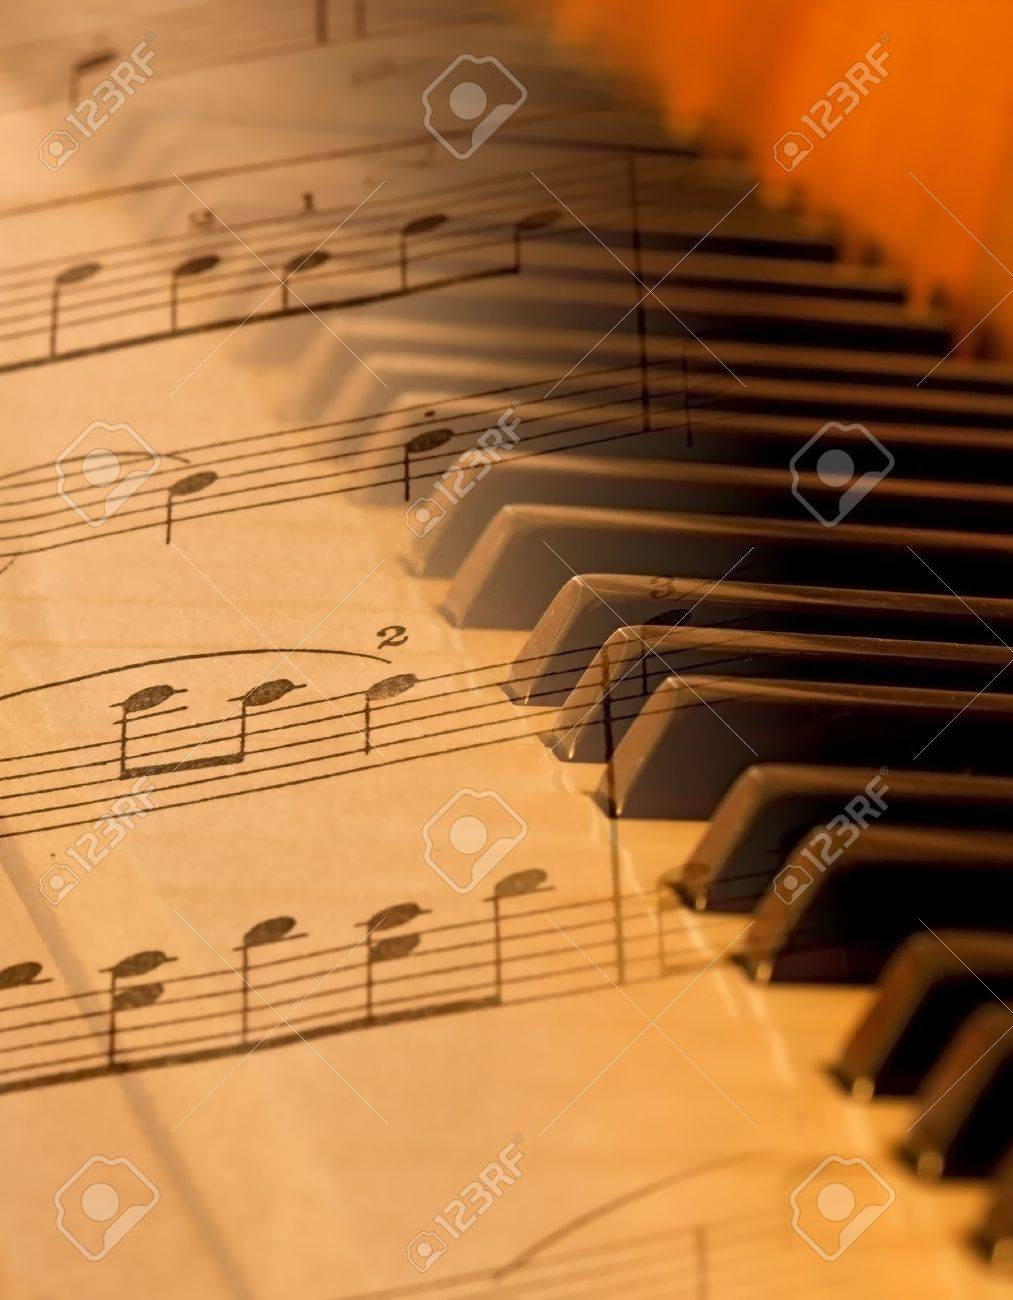 Sheet music blended over piano in soft light blurred Stock Photo - 9834690